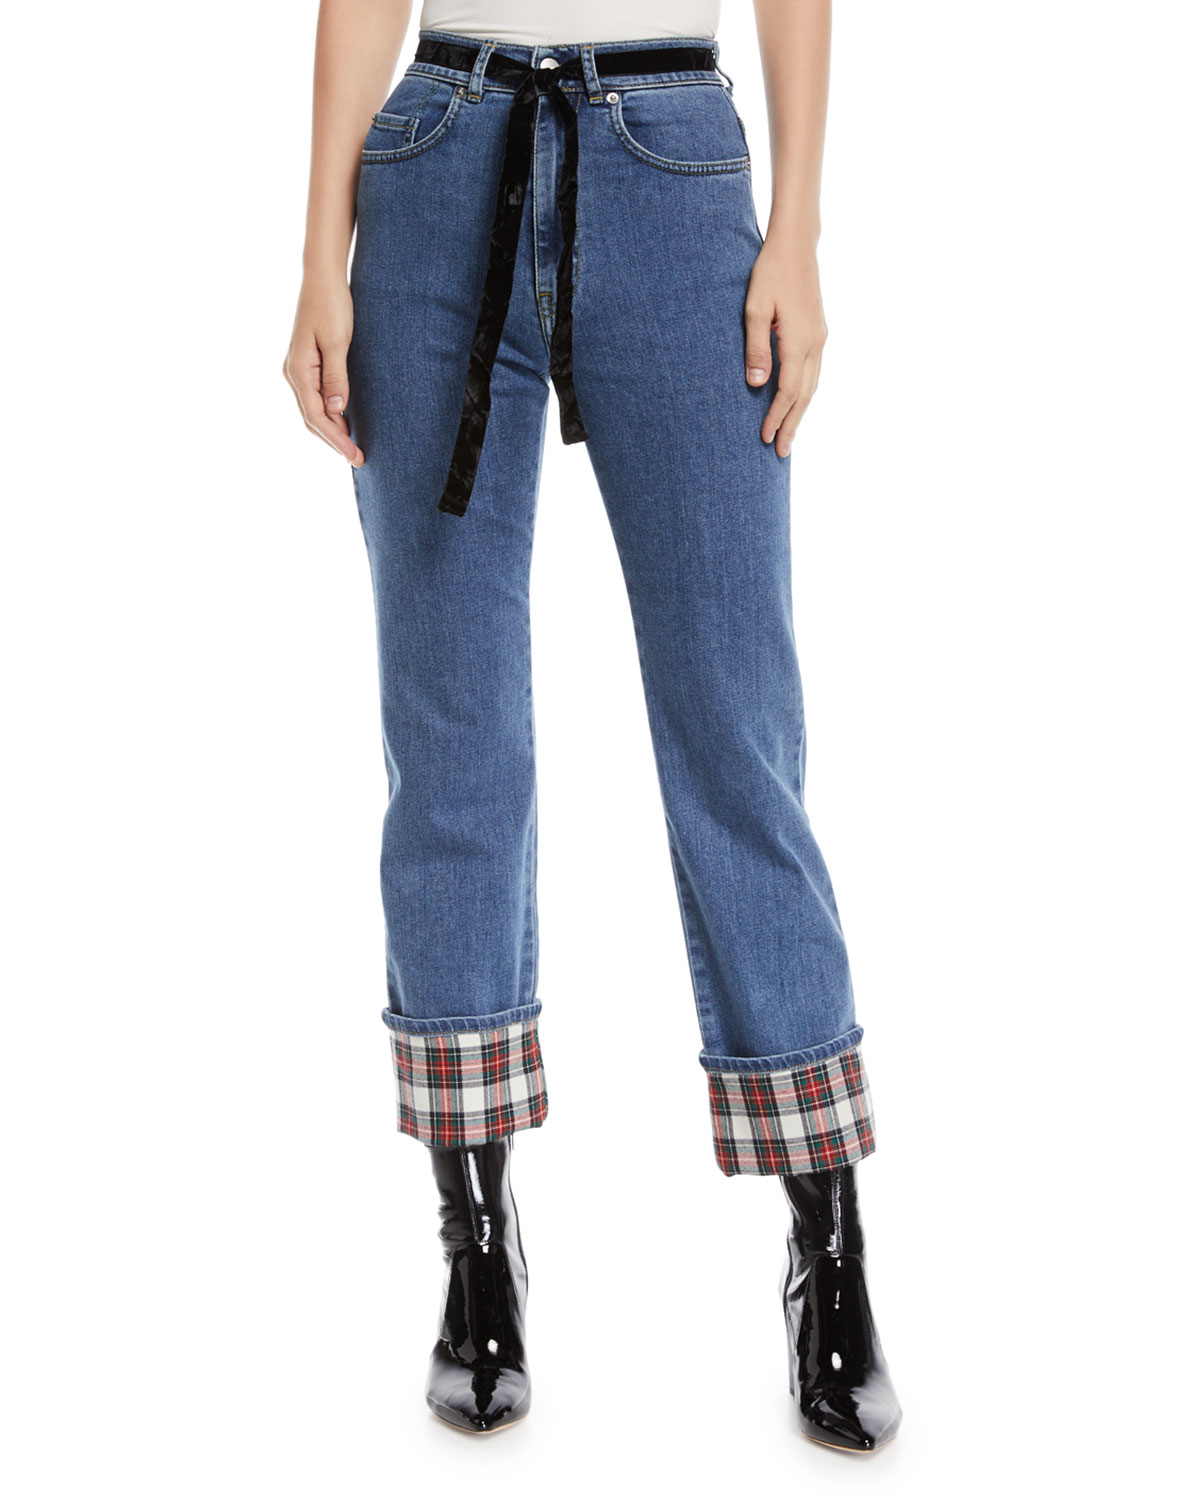 Straight-Leg Cropped Jeans with Tartan Details